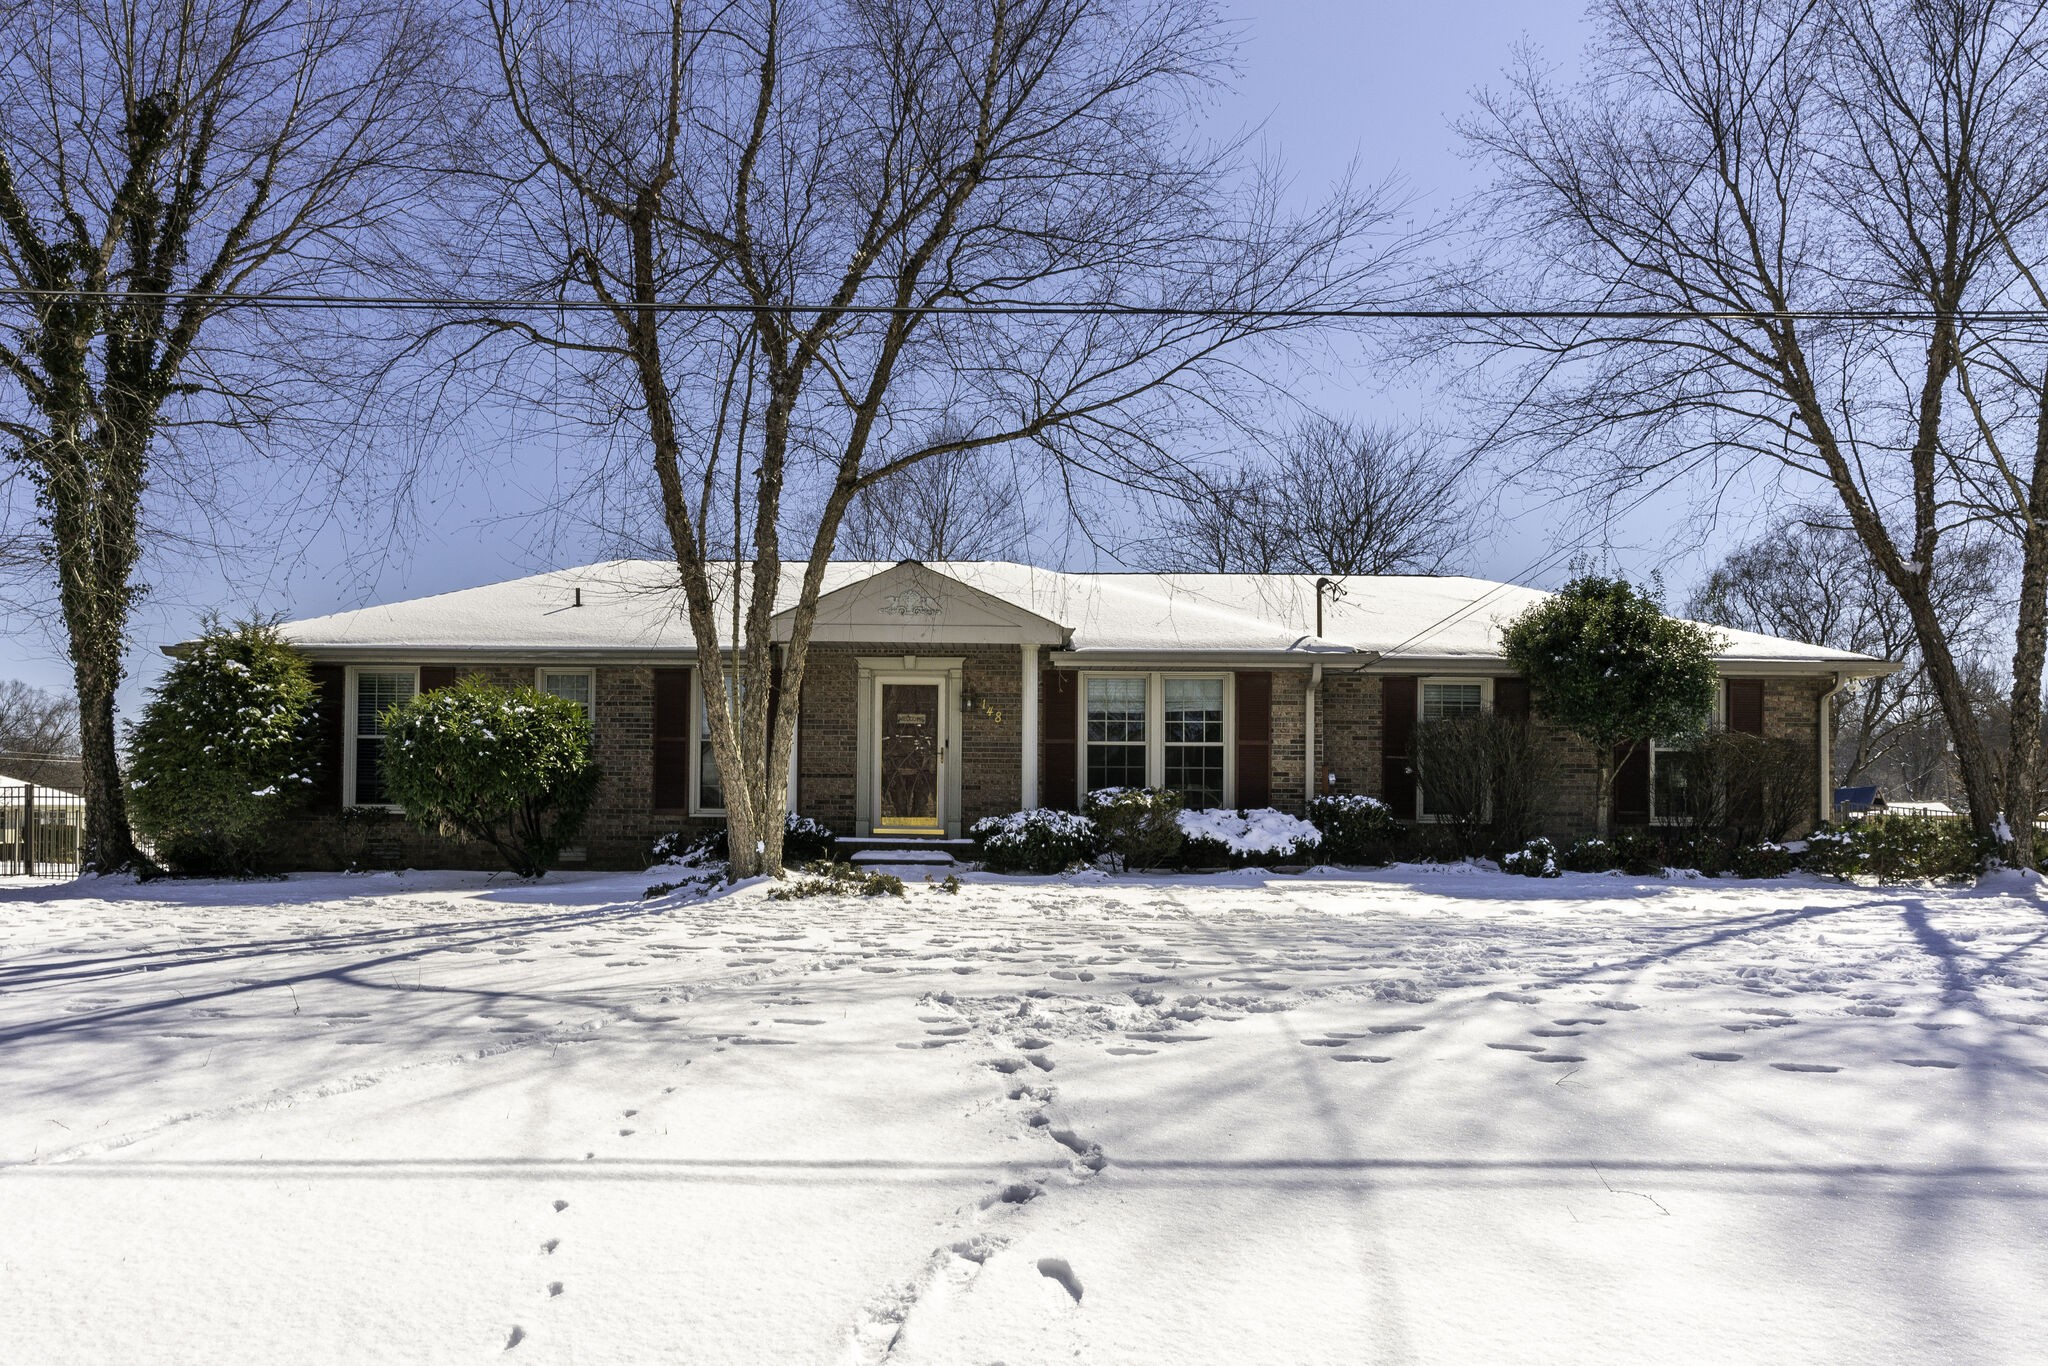 148 Edgewood Dr Property Photo - Hendersonville, TN real estate listing